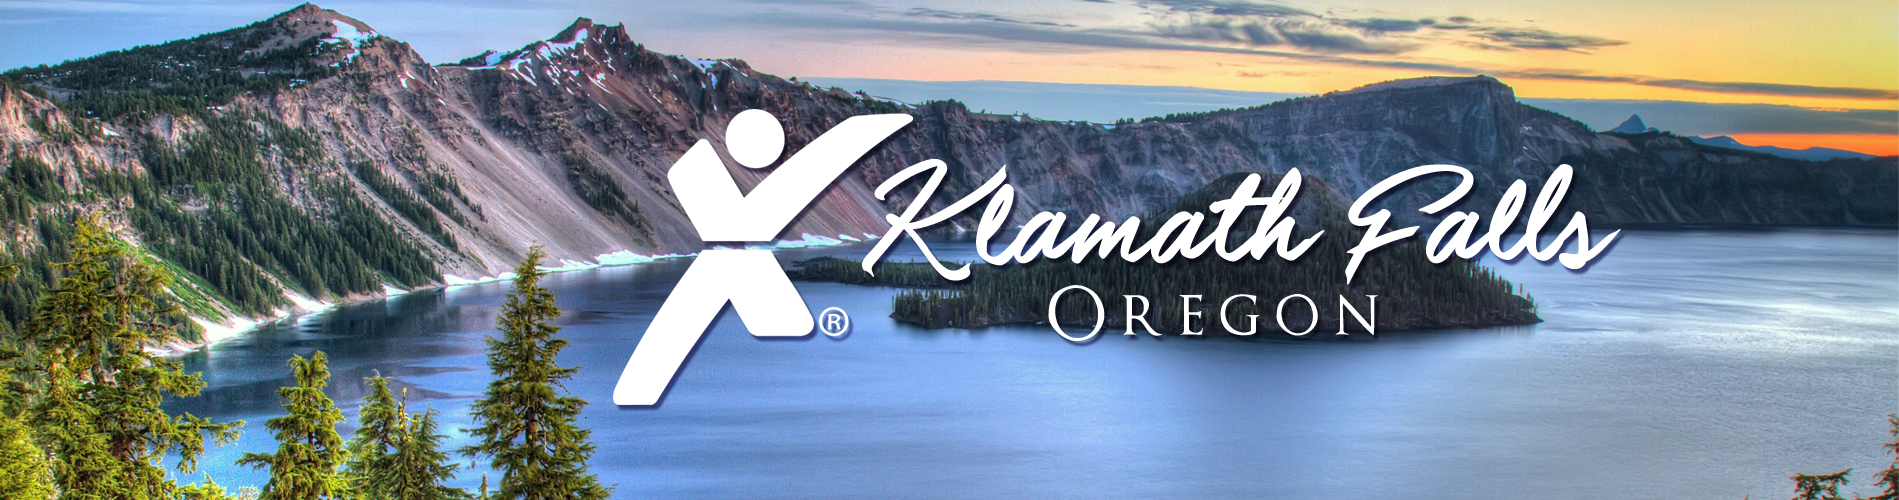 Klamath-Falls-Oregon-Crater-Lake-Express-Employment-Professionals